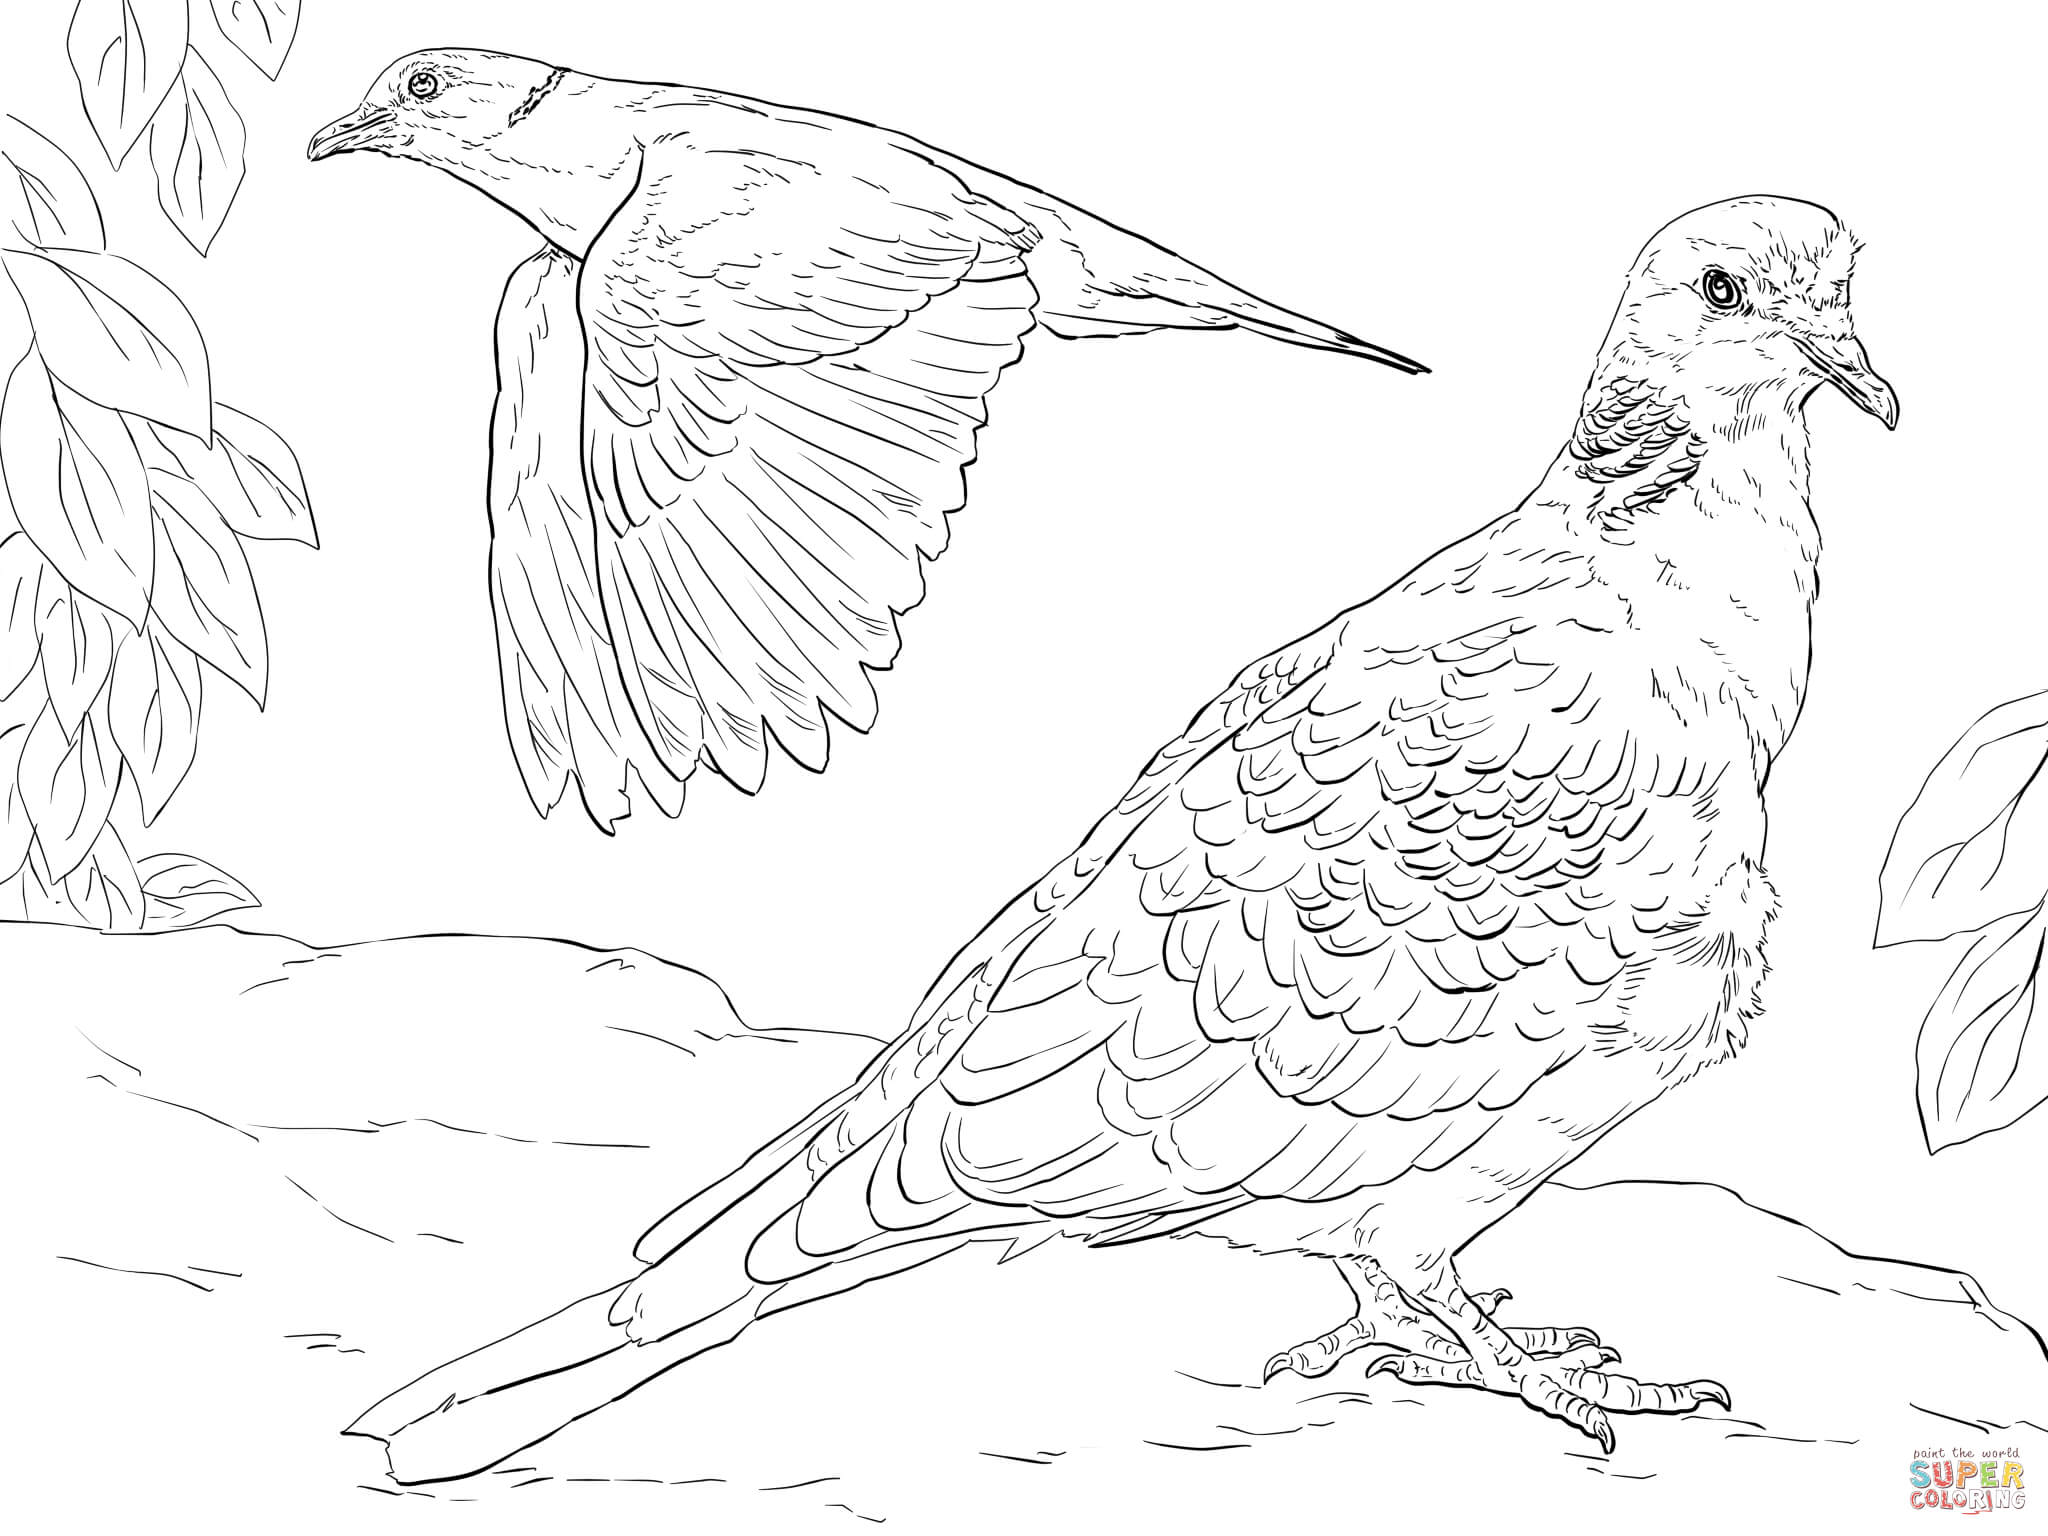 doves coloring pages turtle dove coloring download turtle dove coloring for pages coloring doves